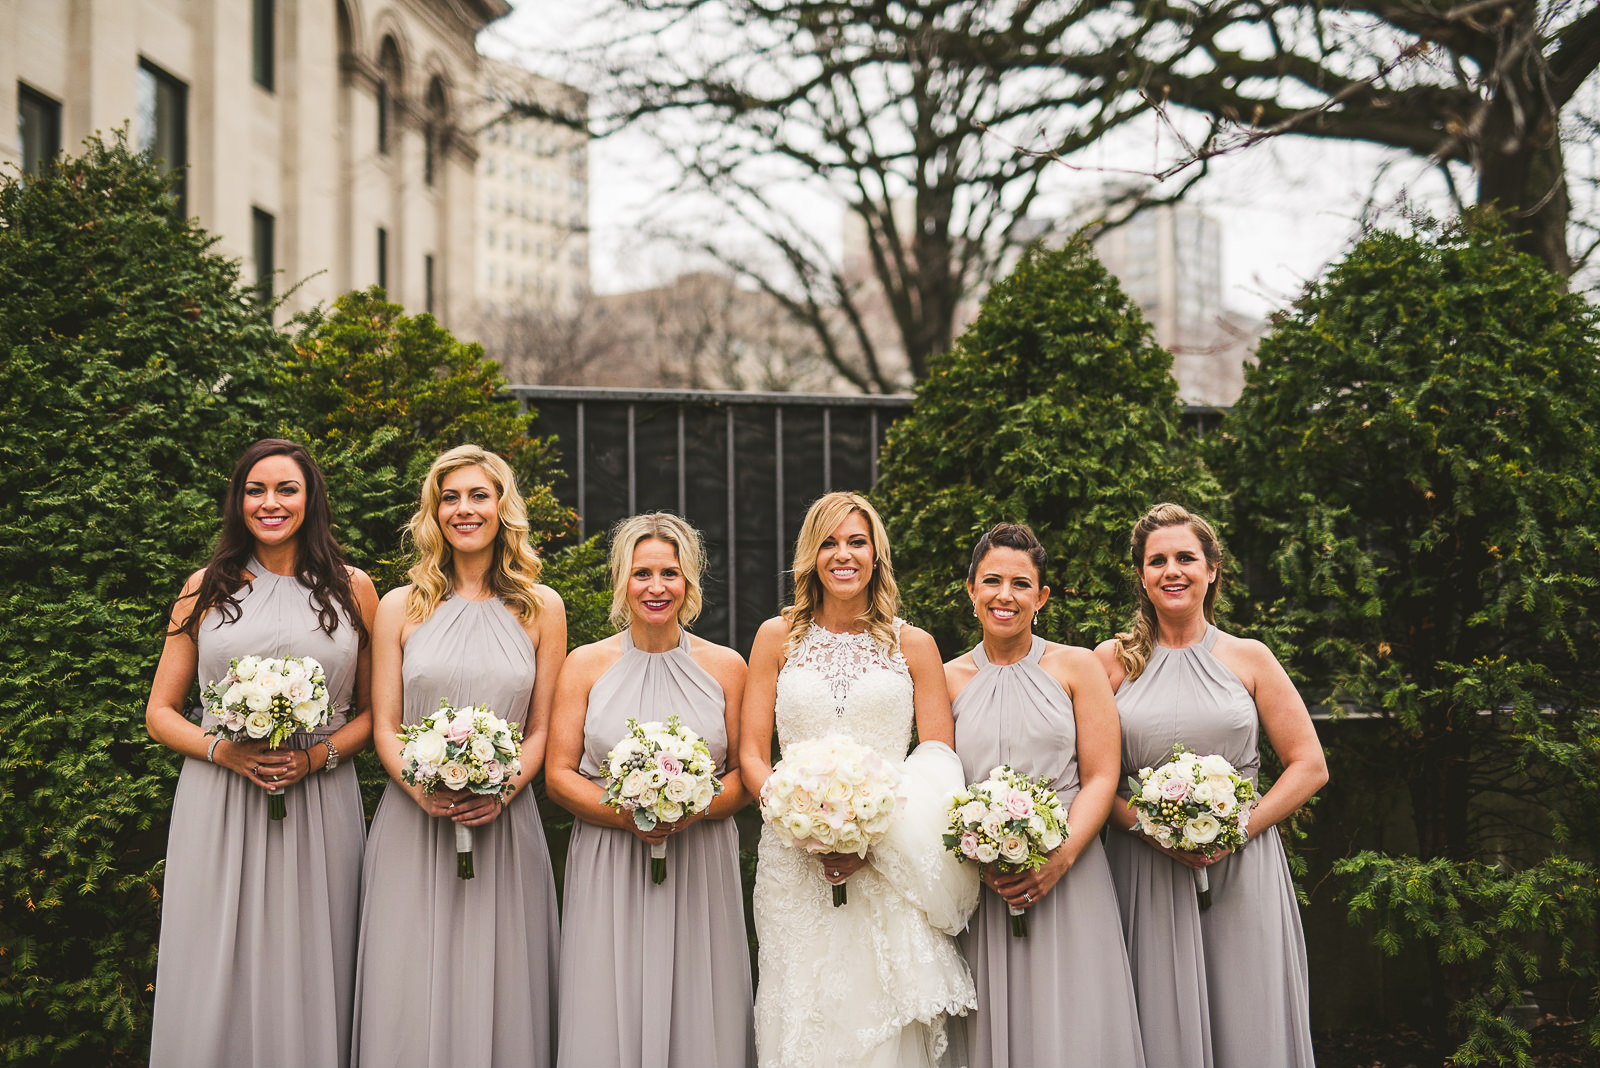 29 bridesmaids at wedding - Chicago Wedding Photography at Gallery 1028 // Courtnie + David